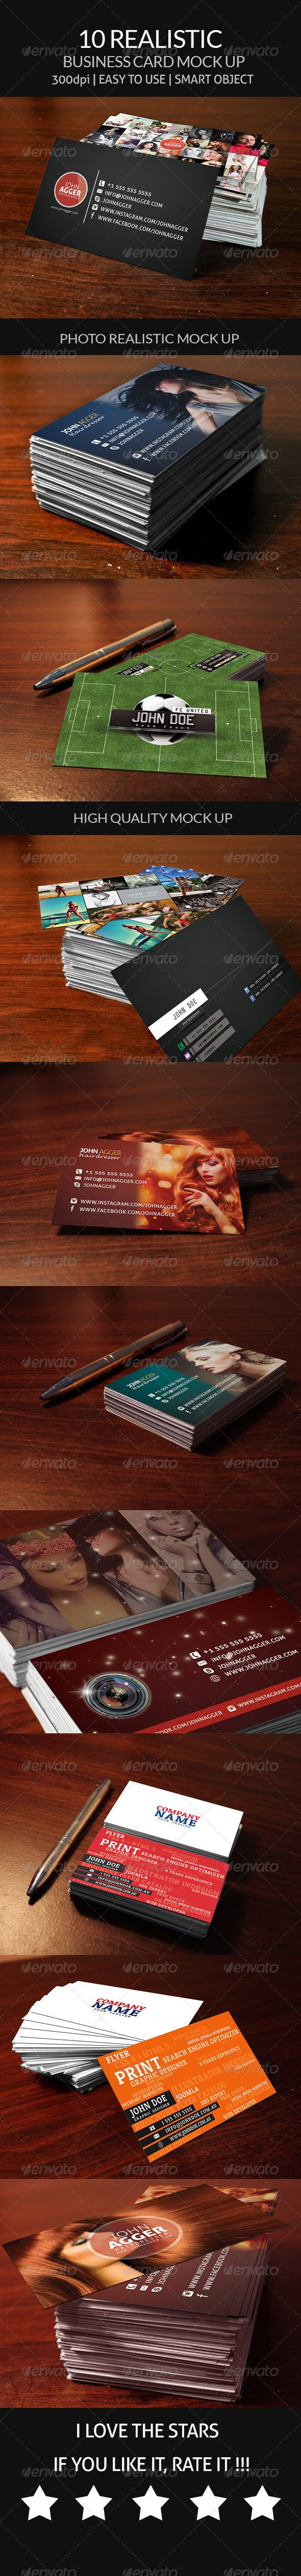 !0 realistic Business card mock up